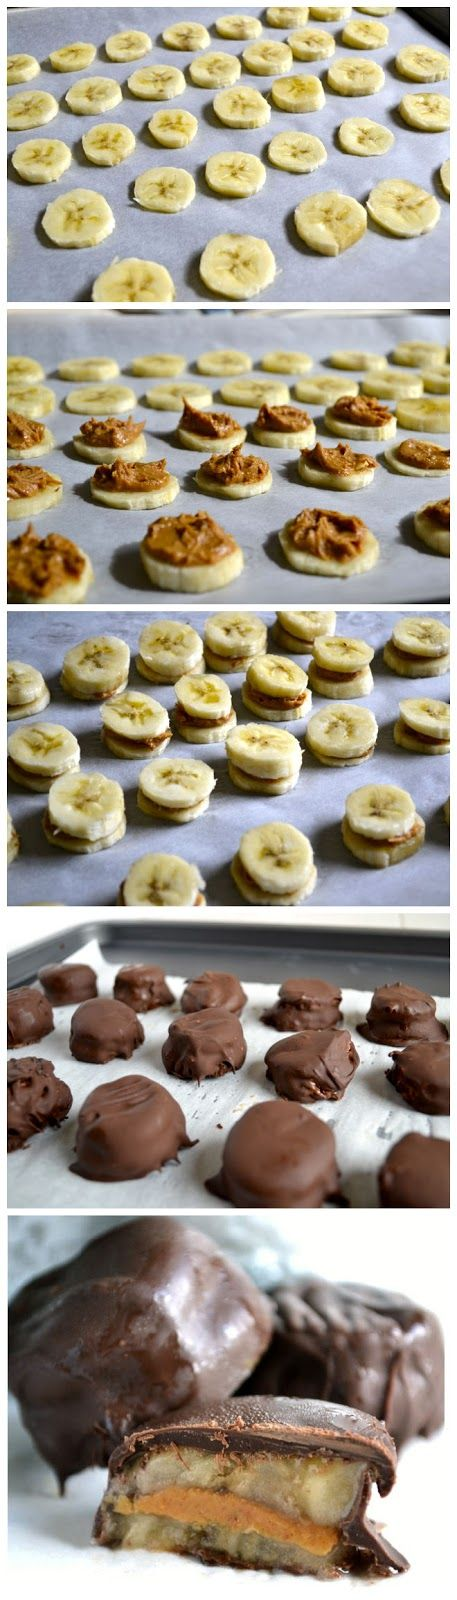 Start Recipes: Chocolate Covered Frozen Banana and Peanut Butter Bites